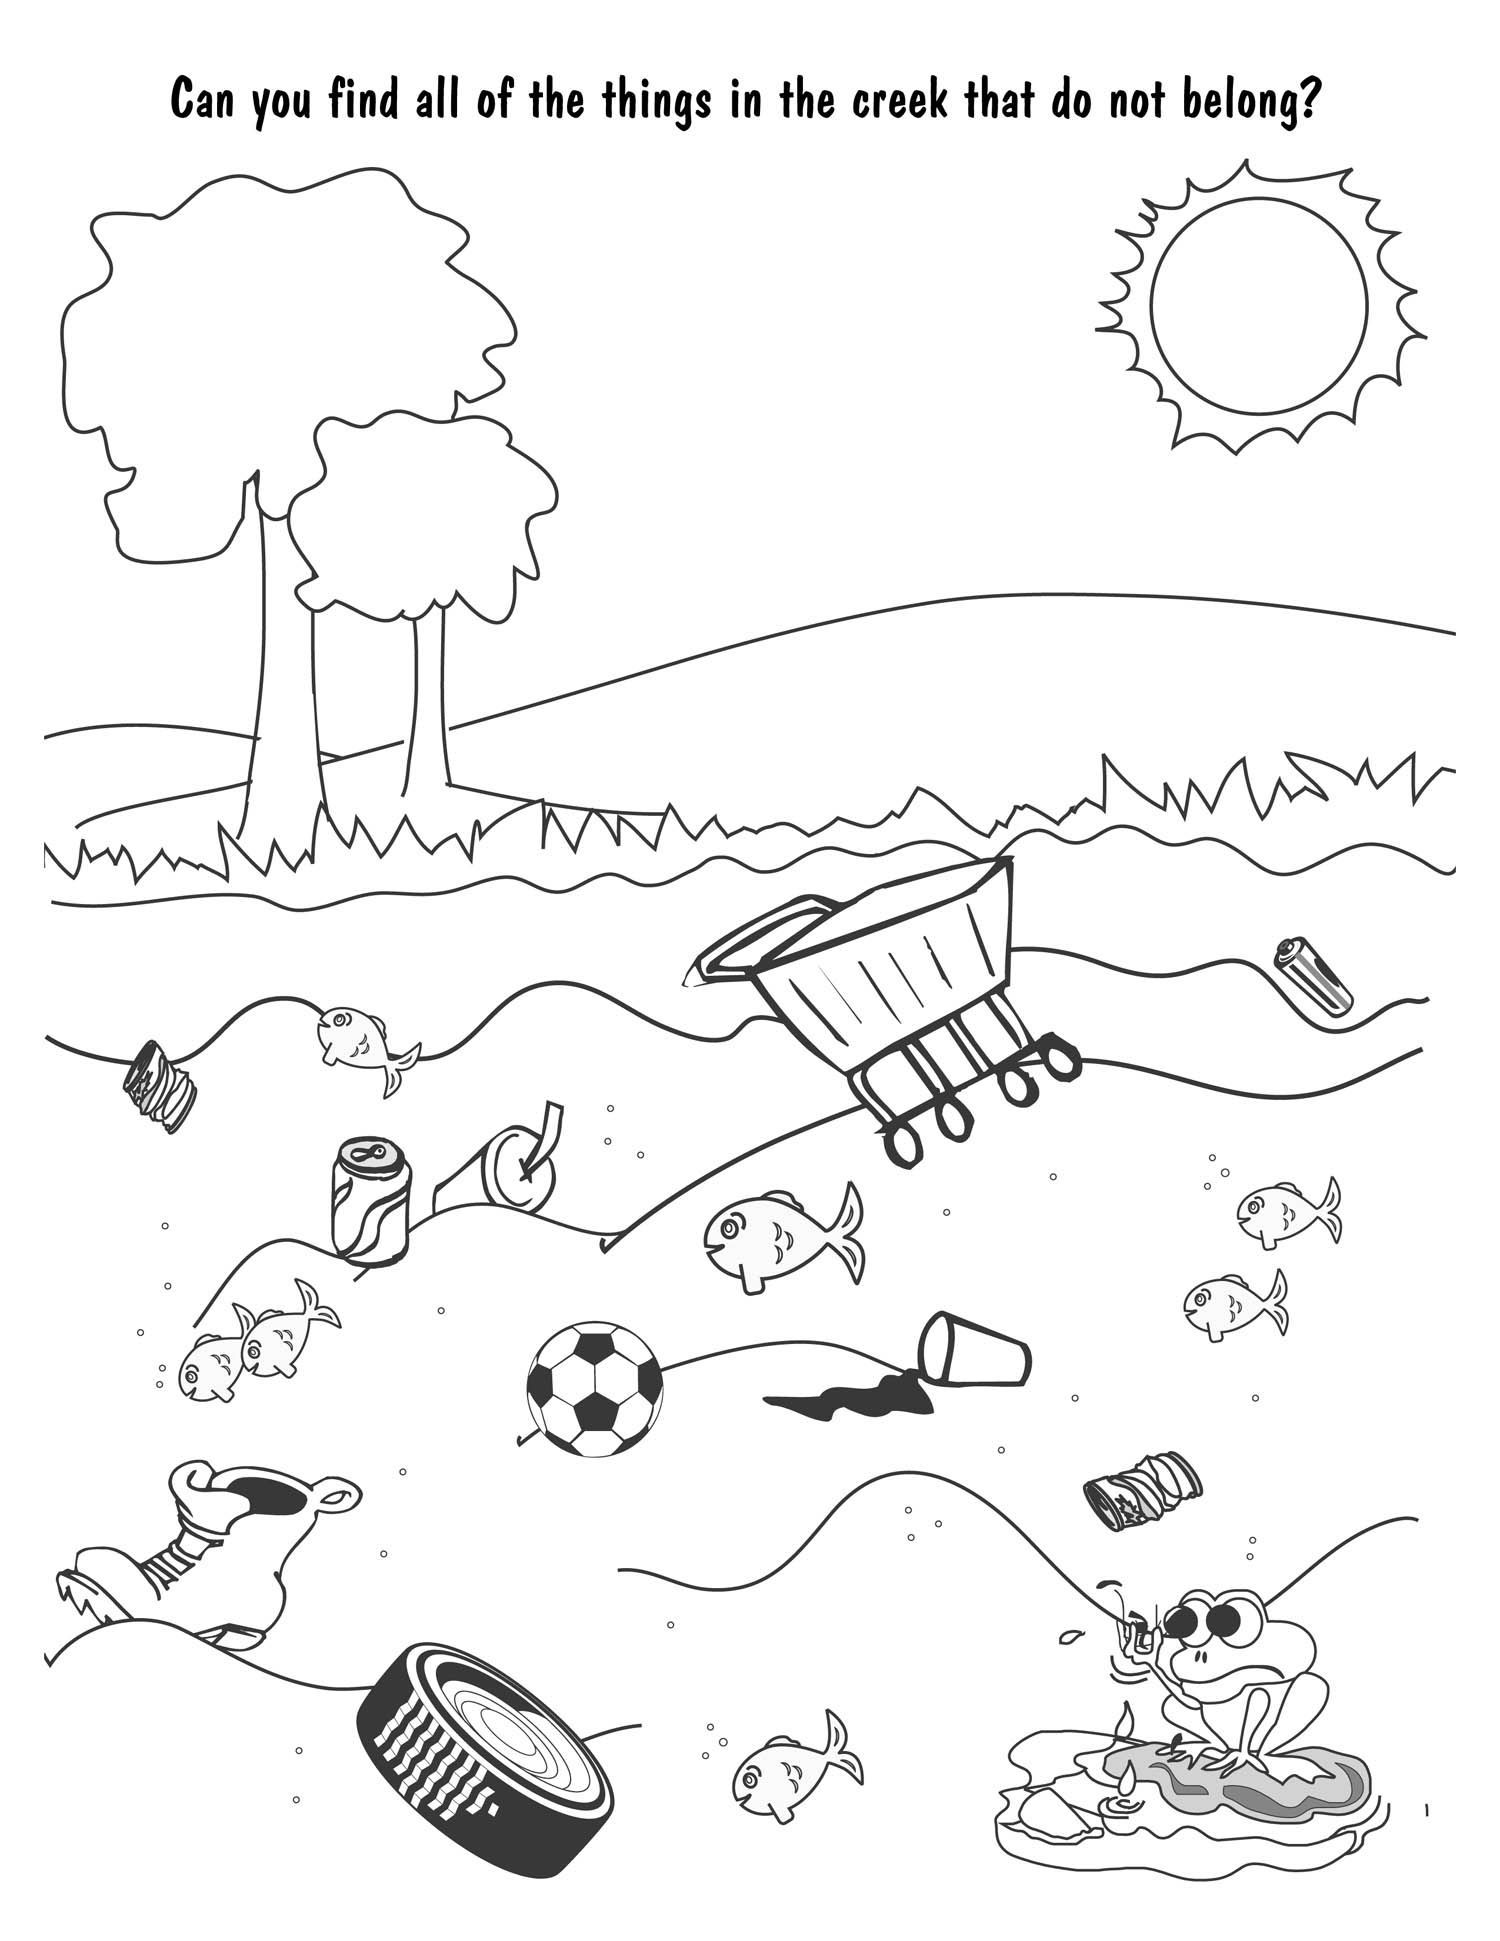 Water Pollution Coloring Pages At Getdrawings